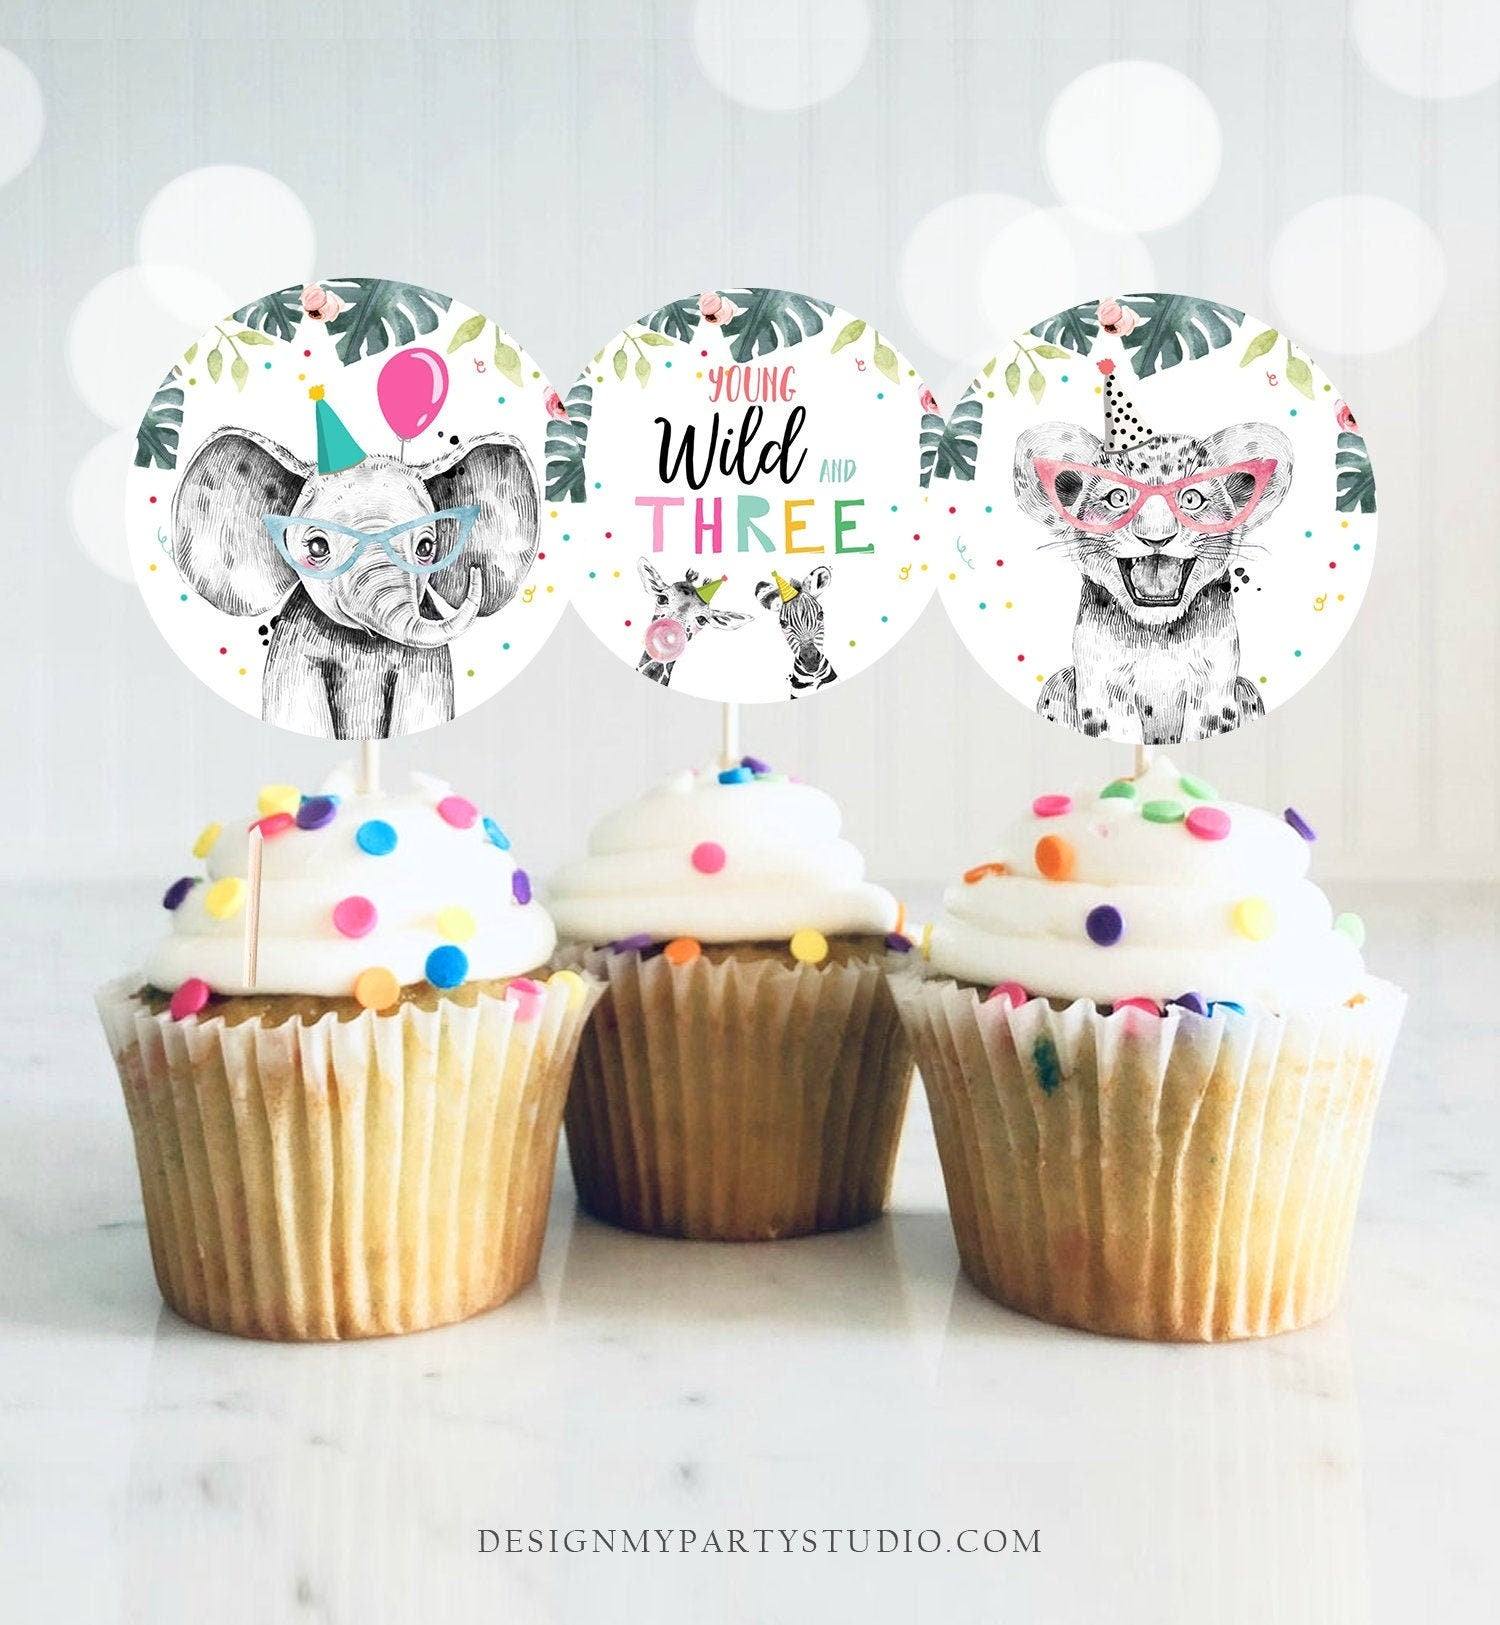 Party Animals Cupcake Toppers Favor Tags Birthday Party Decoration Safari Animals Zoo Young Wild and Three download Digital PRINTABLE 0322